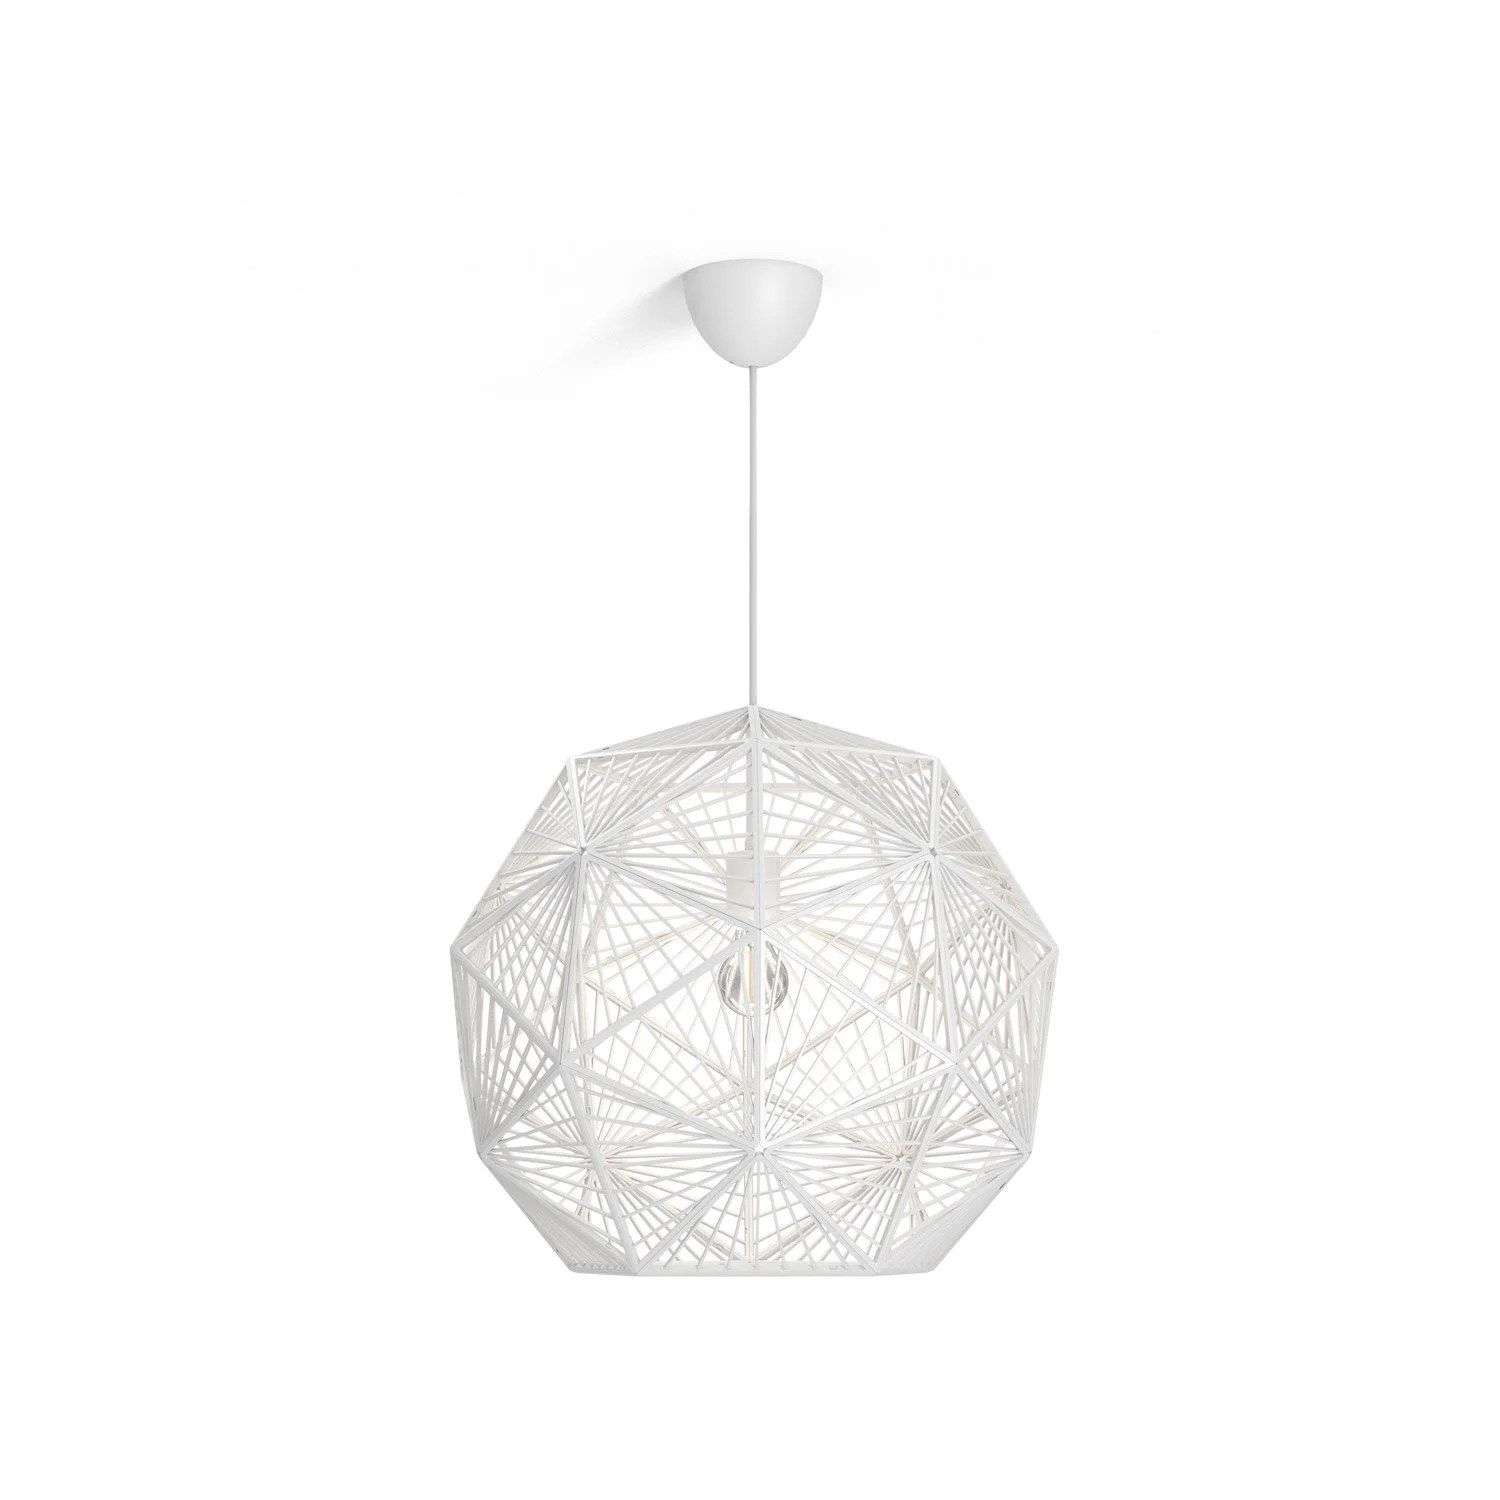 Suspension Blanche Suspension Blanche Design Suspension Blanche Design Harper